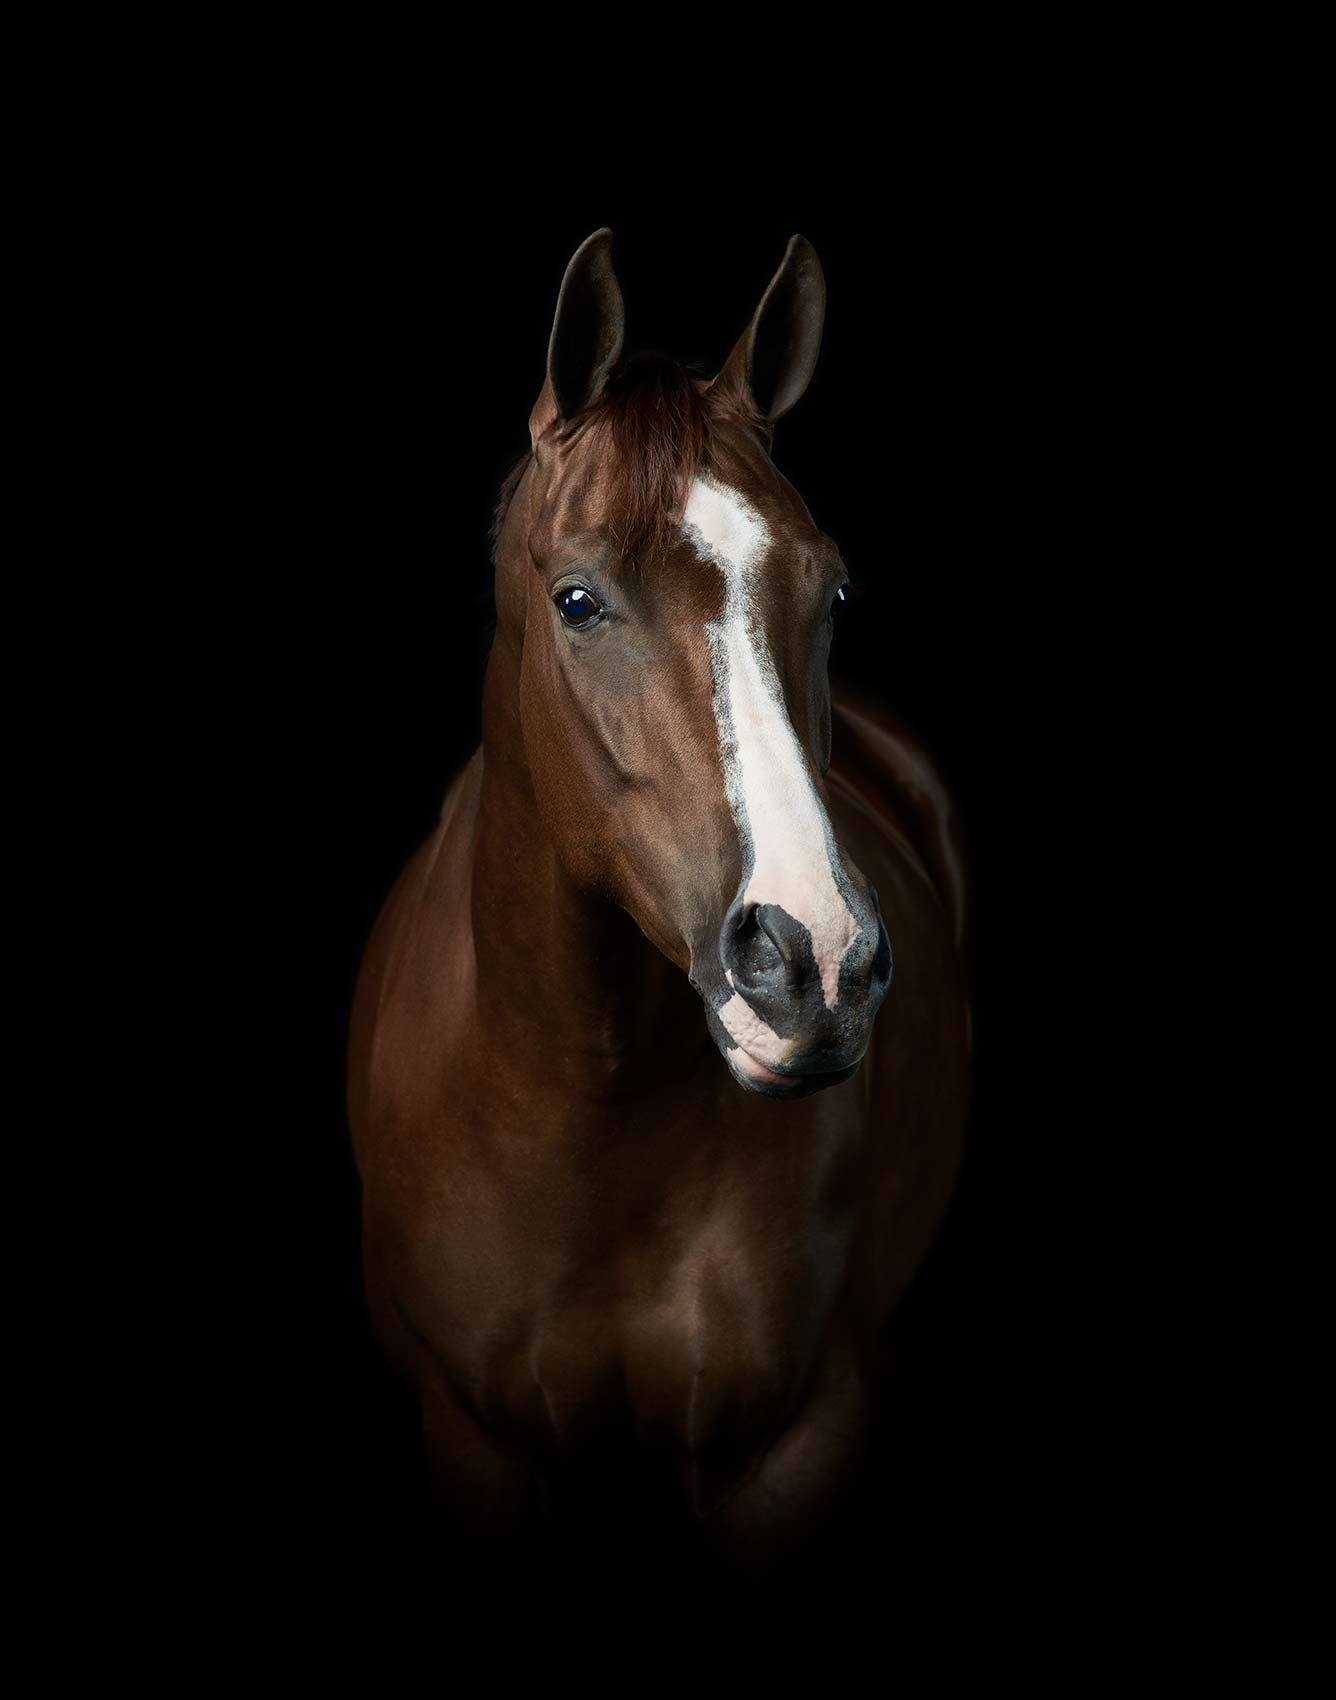 Purina-Ford-QuarterHorse2-0837-1